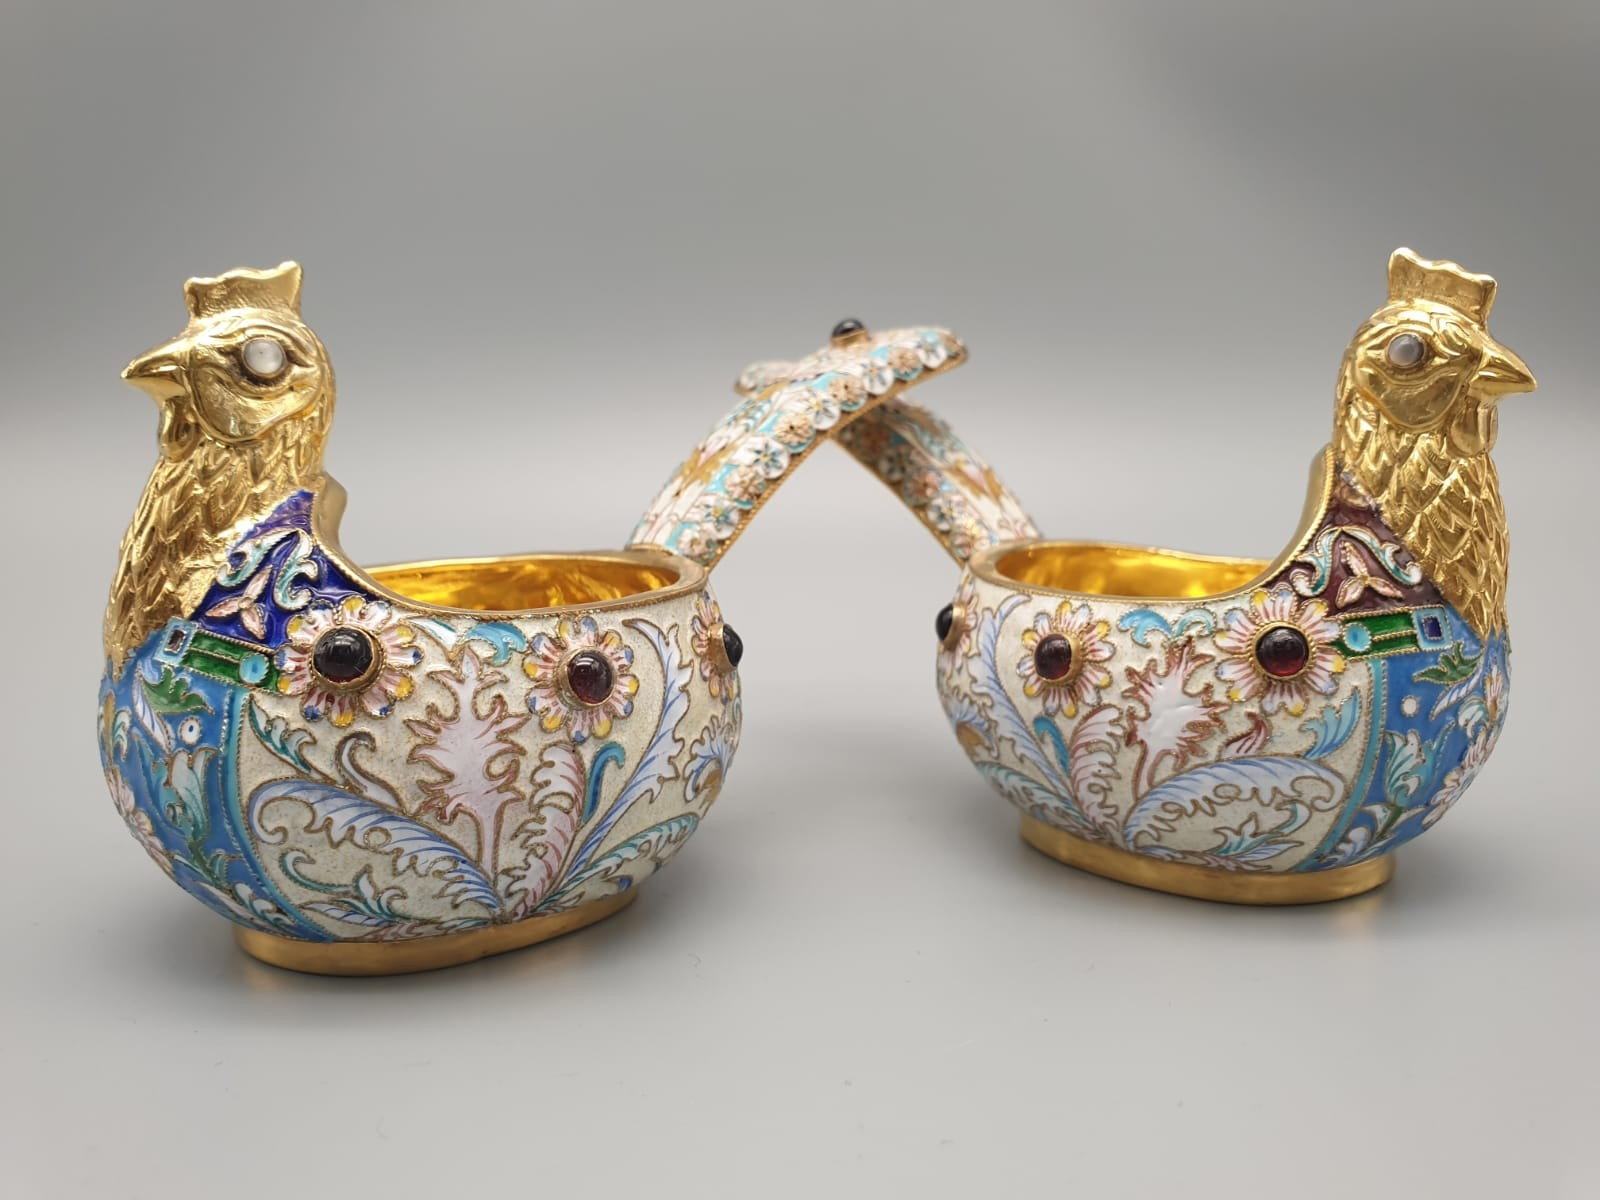 Pair of Russian 20th century silver enamel gemset kavosch bowl in the form of birds, an exquisite